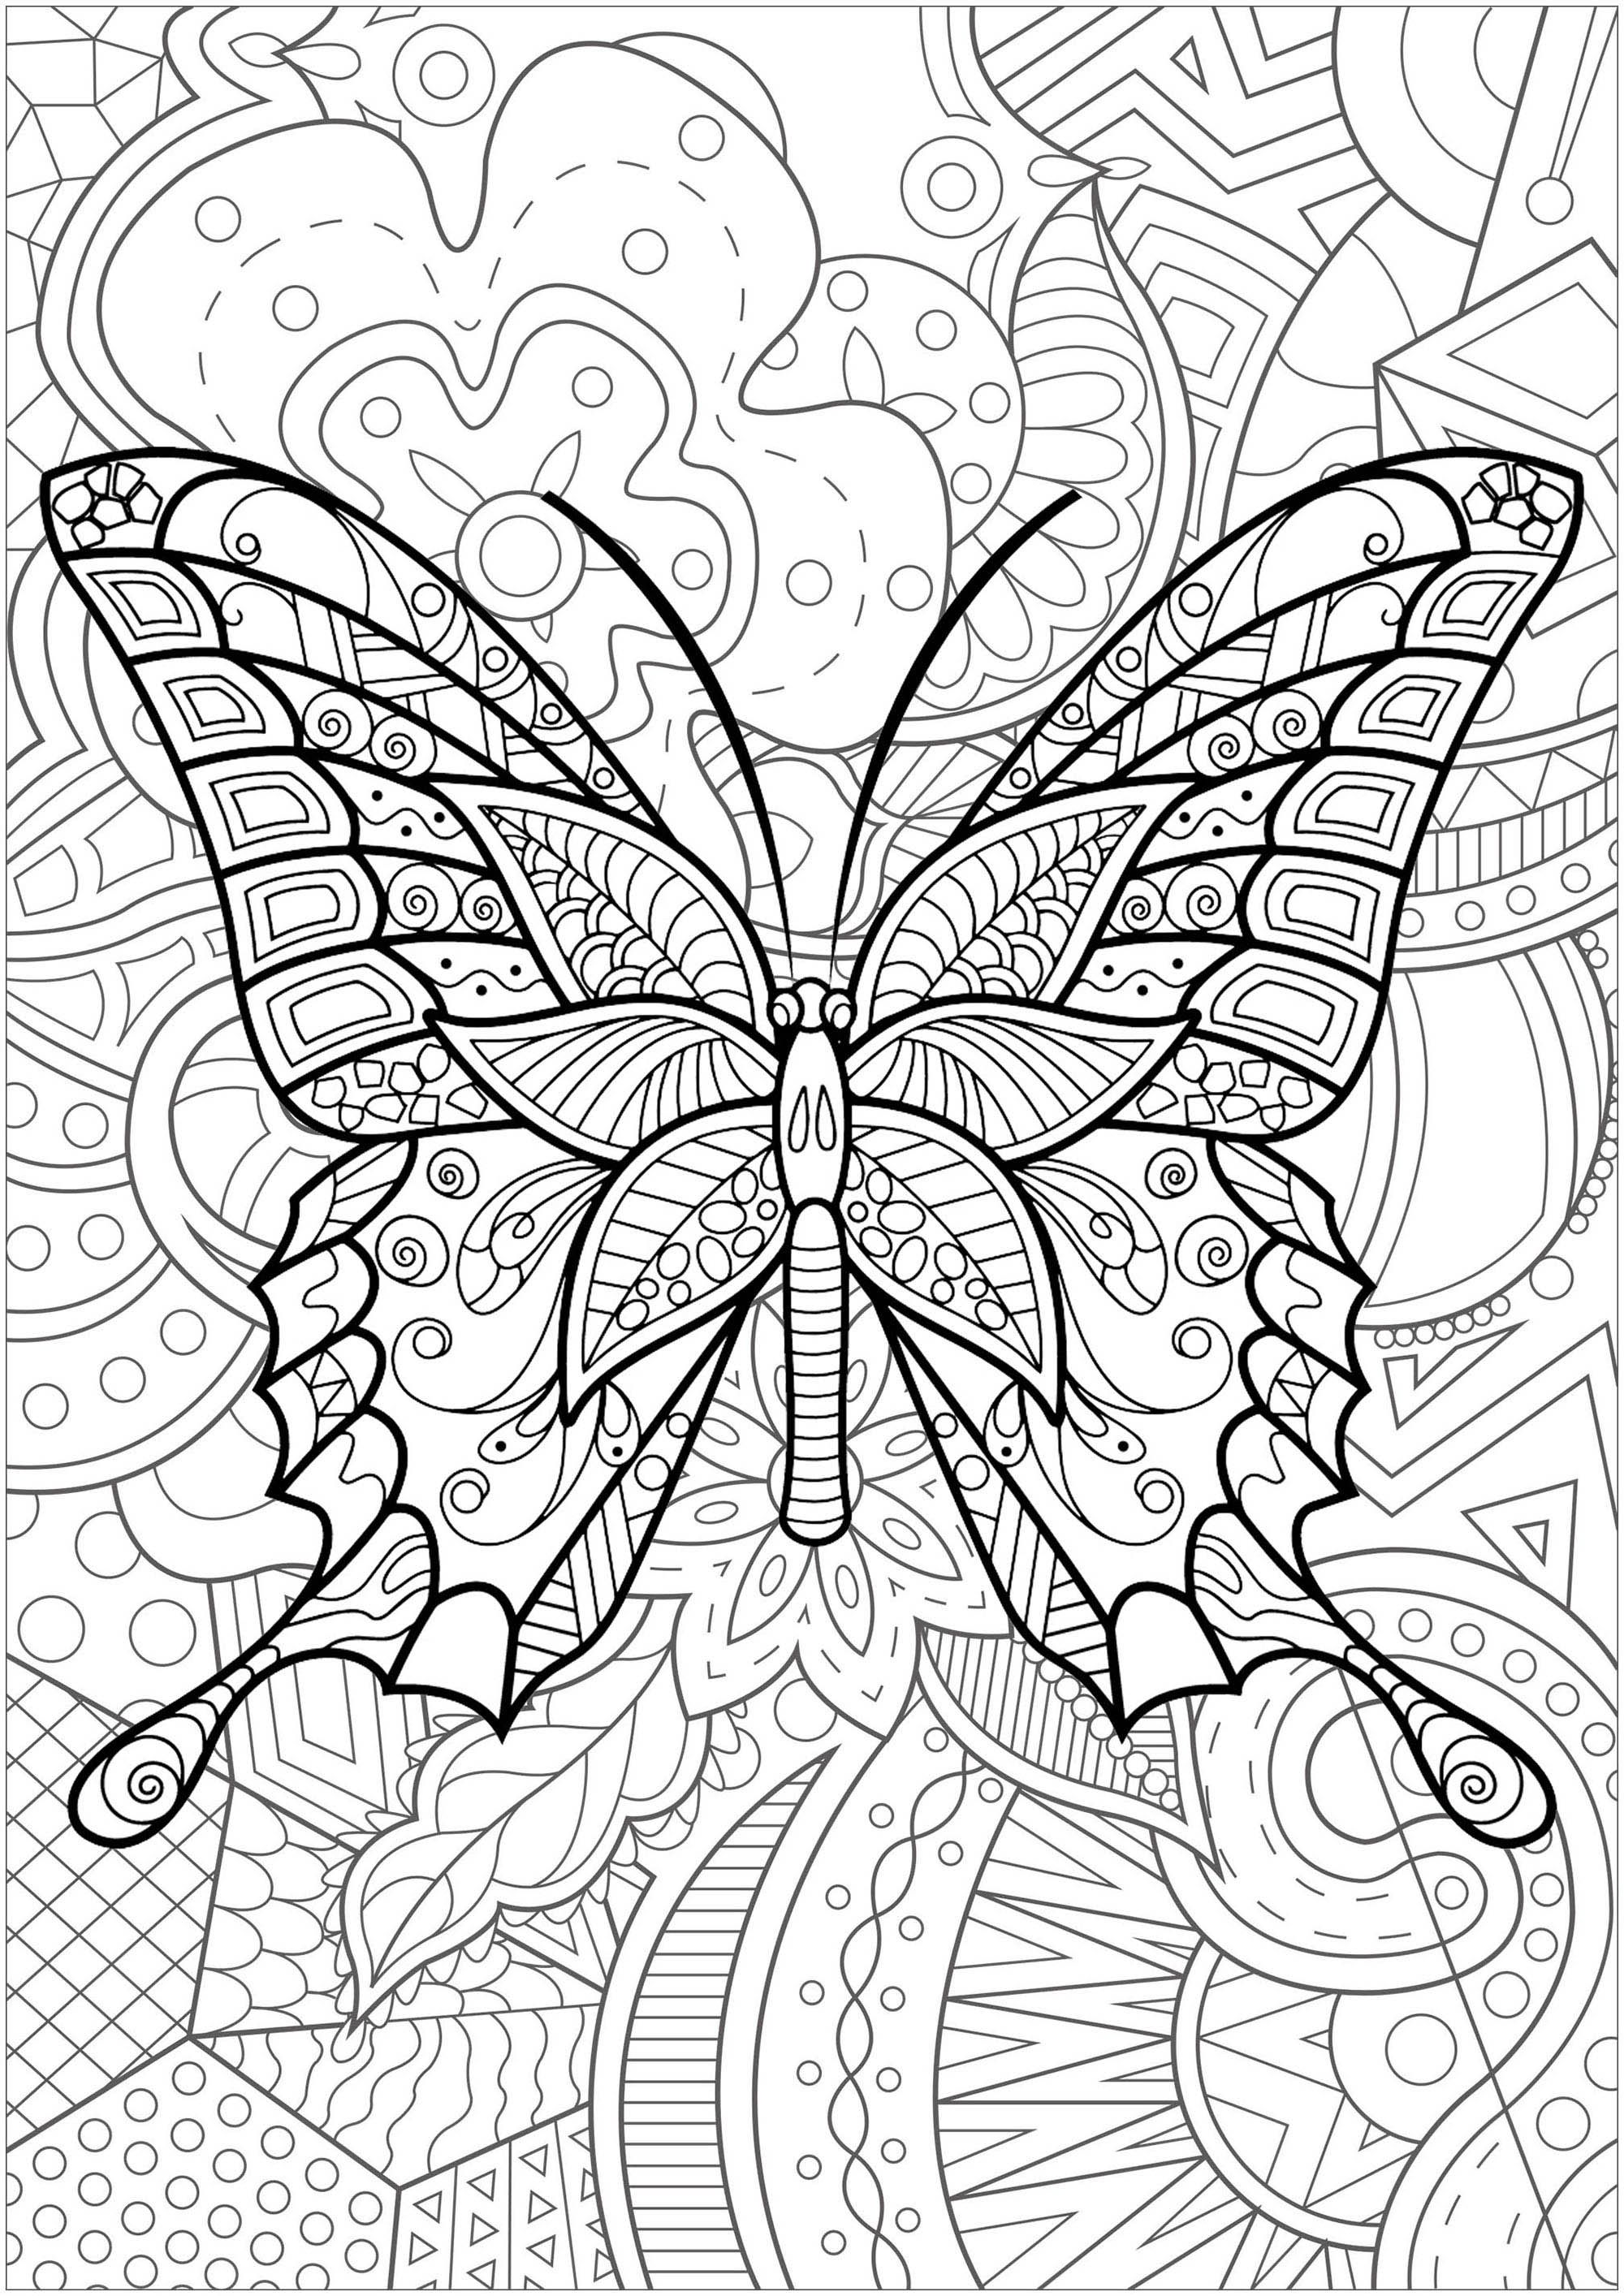 Butterfly With Patterns Inside And Magnificent Flowered Background 3 From The Gallery Insect Coloring Pages Mandala Coloring Pages Butterfly Coloring Page